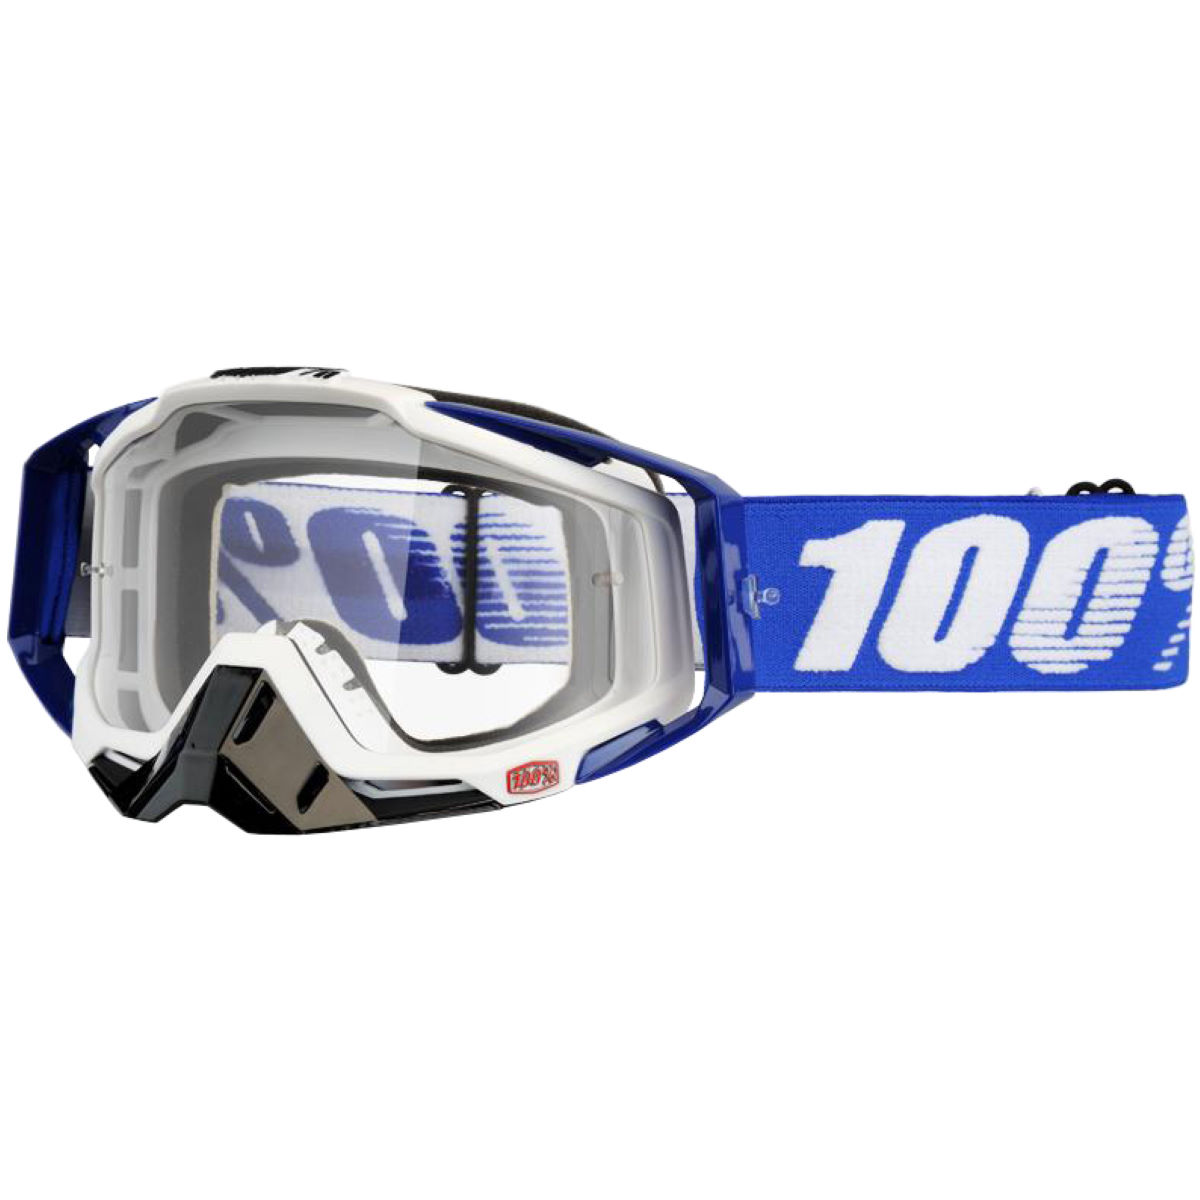 100% Racecraft Goggle - Clear Lens - One Size Cobalt Blue